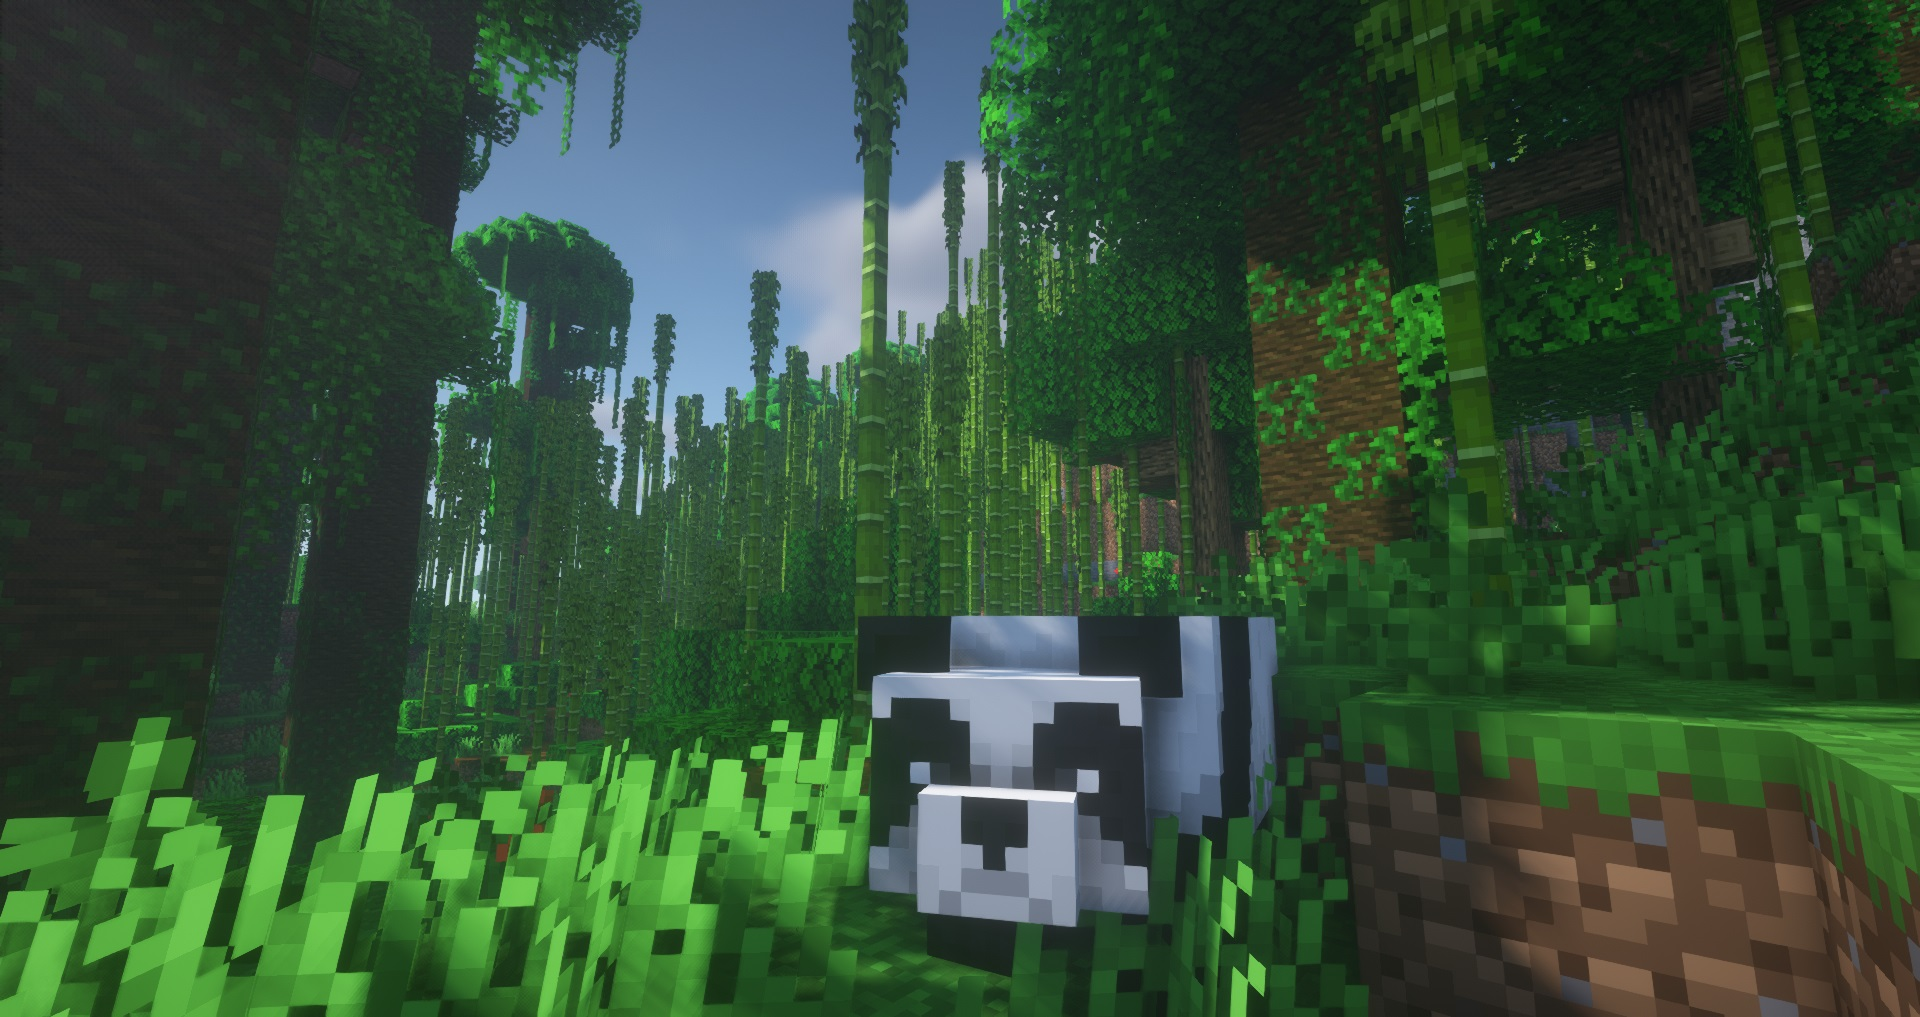 Minecraft seed - big bamboo jungle - A panda mob stands in the center of a large bamboo forest